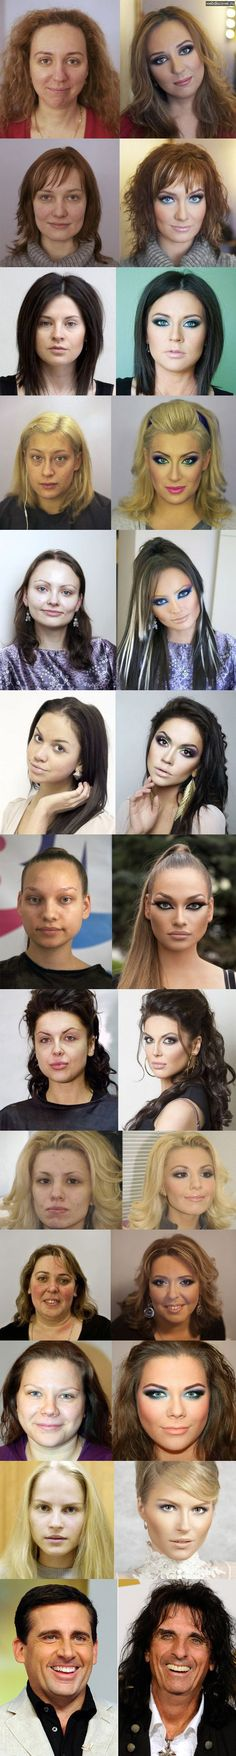 Celebrities : Before Makeup And After Makeup